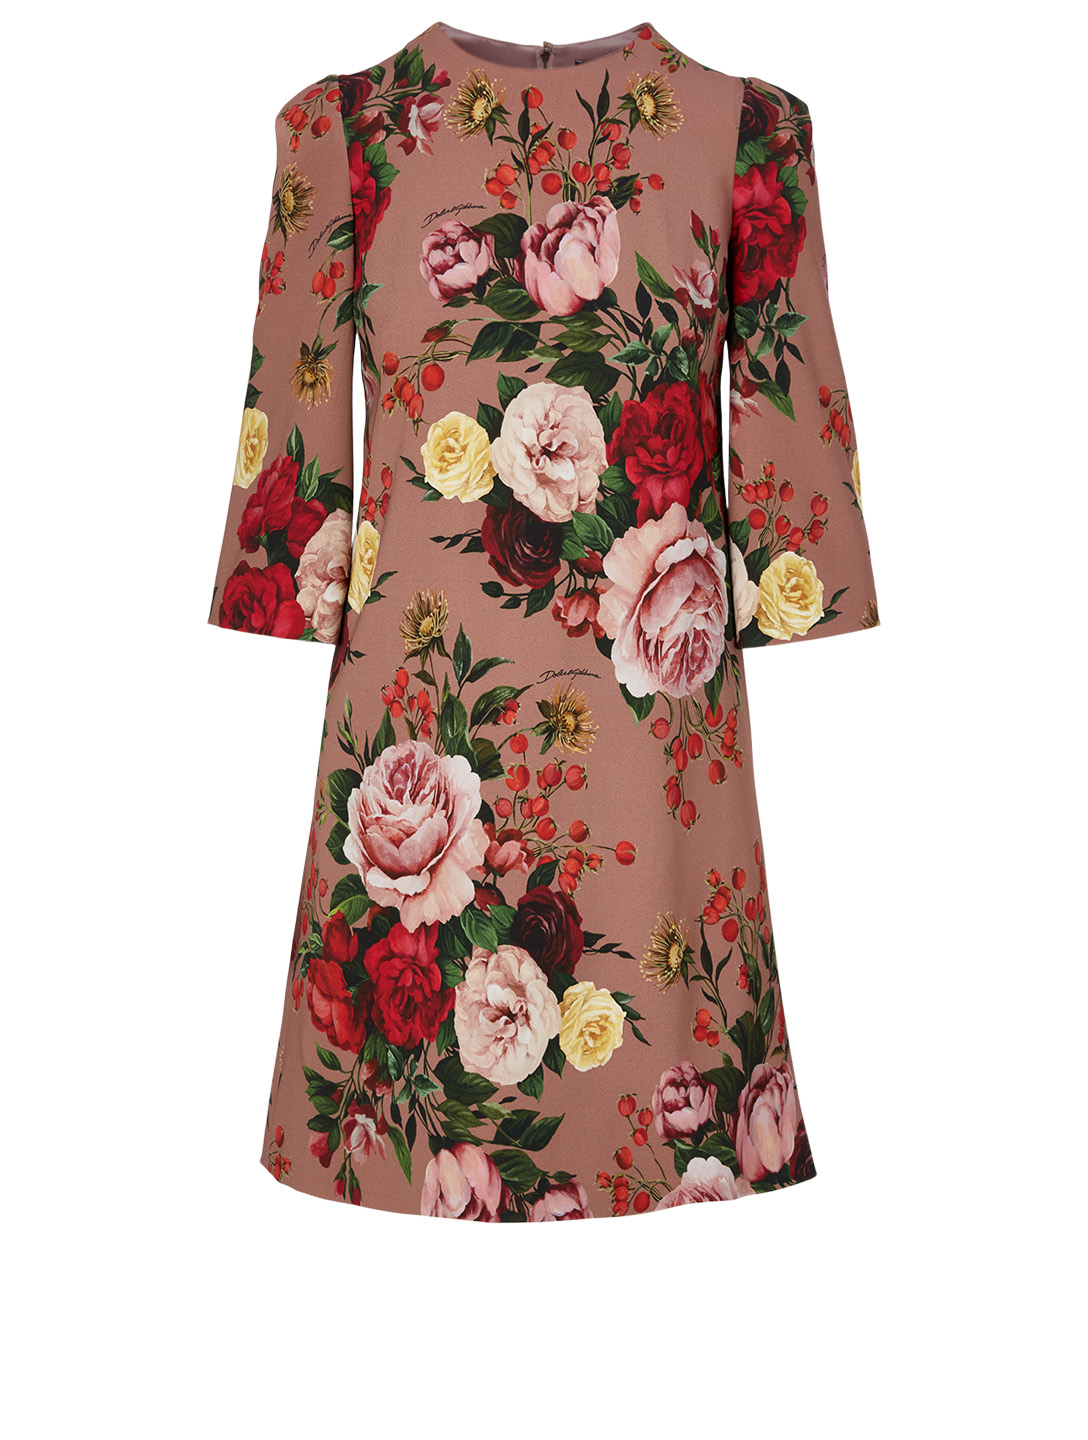 DOLCE & GABBANA Cady Mini Dress In Baroque Rose Print Women's Multi